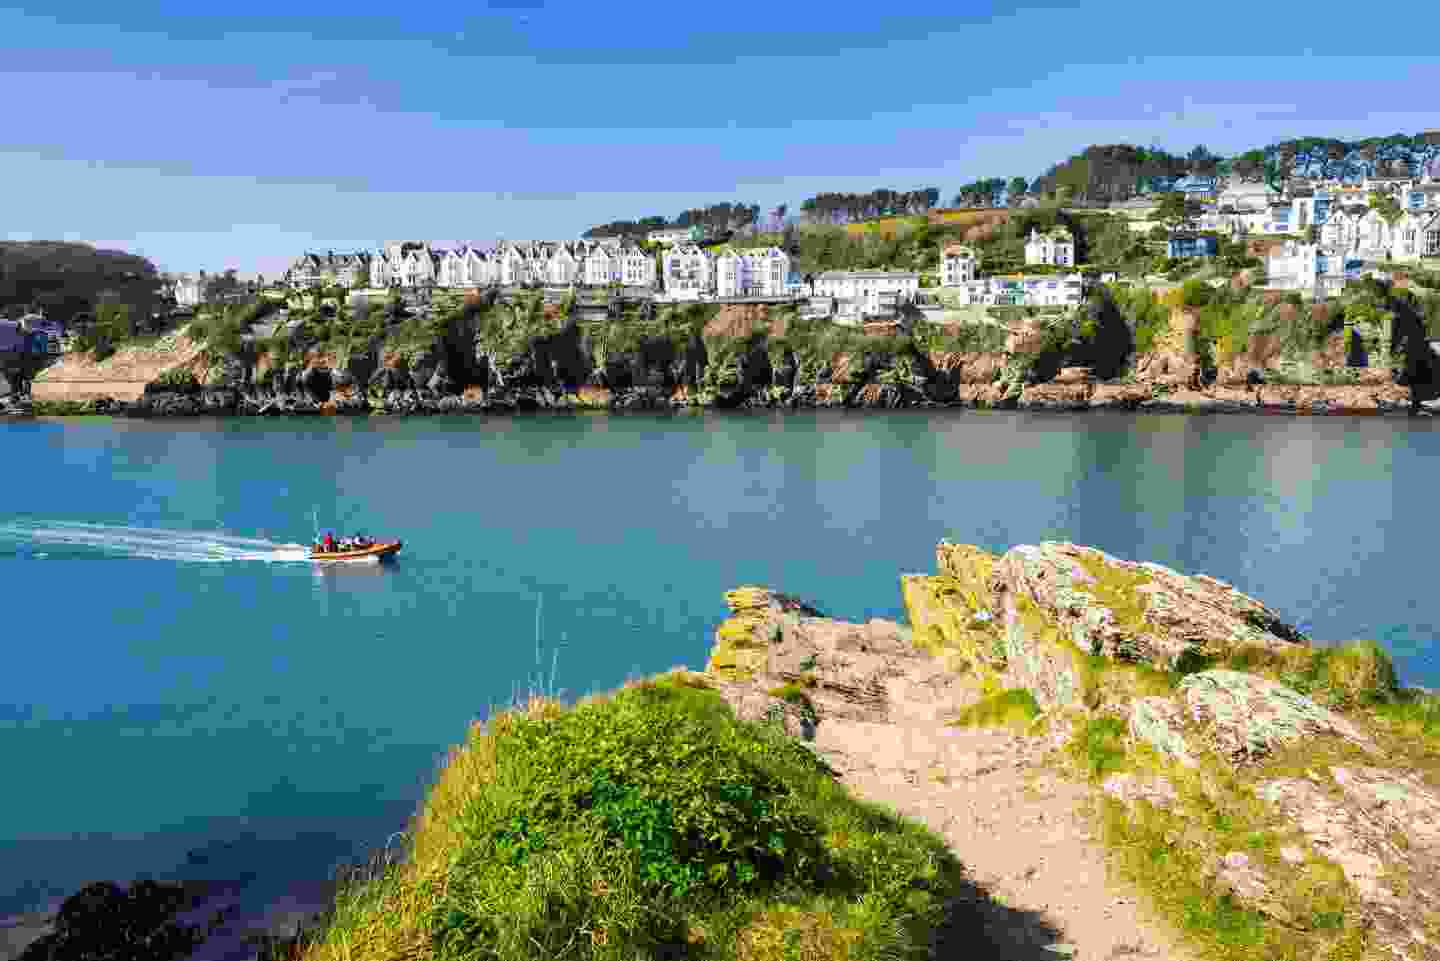 Views across the river to Fowey from Polruan Block House, Cornwall (Shutterstock)